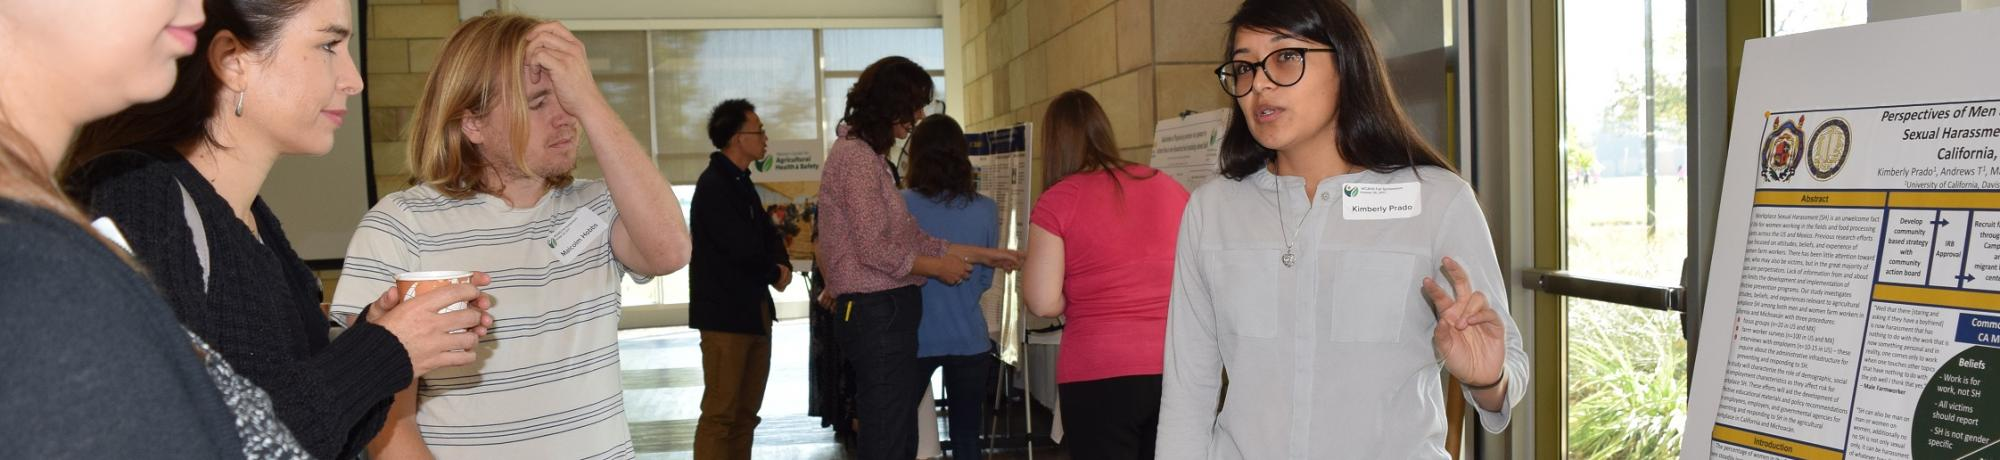 WCAHS Graduate Student Kimberly Prado on right side explains research poster to three women on left side